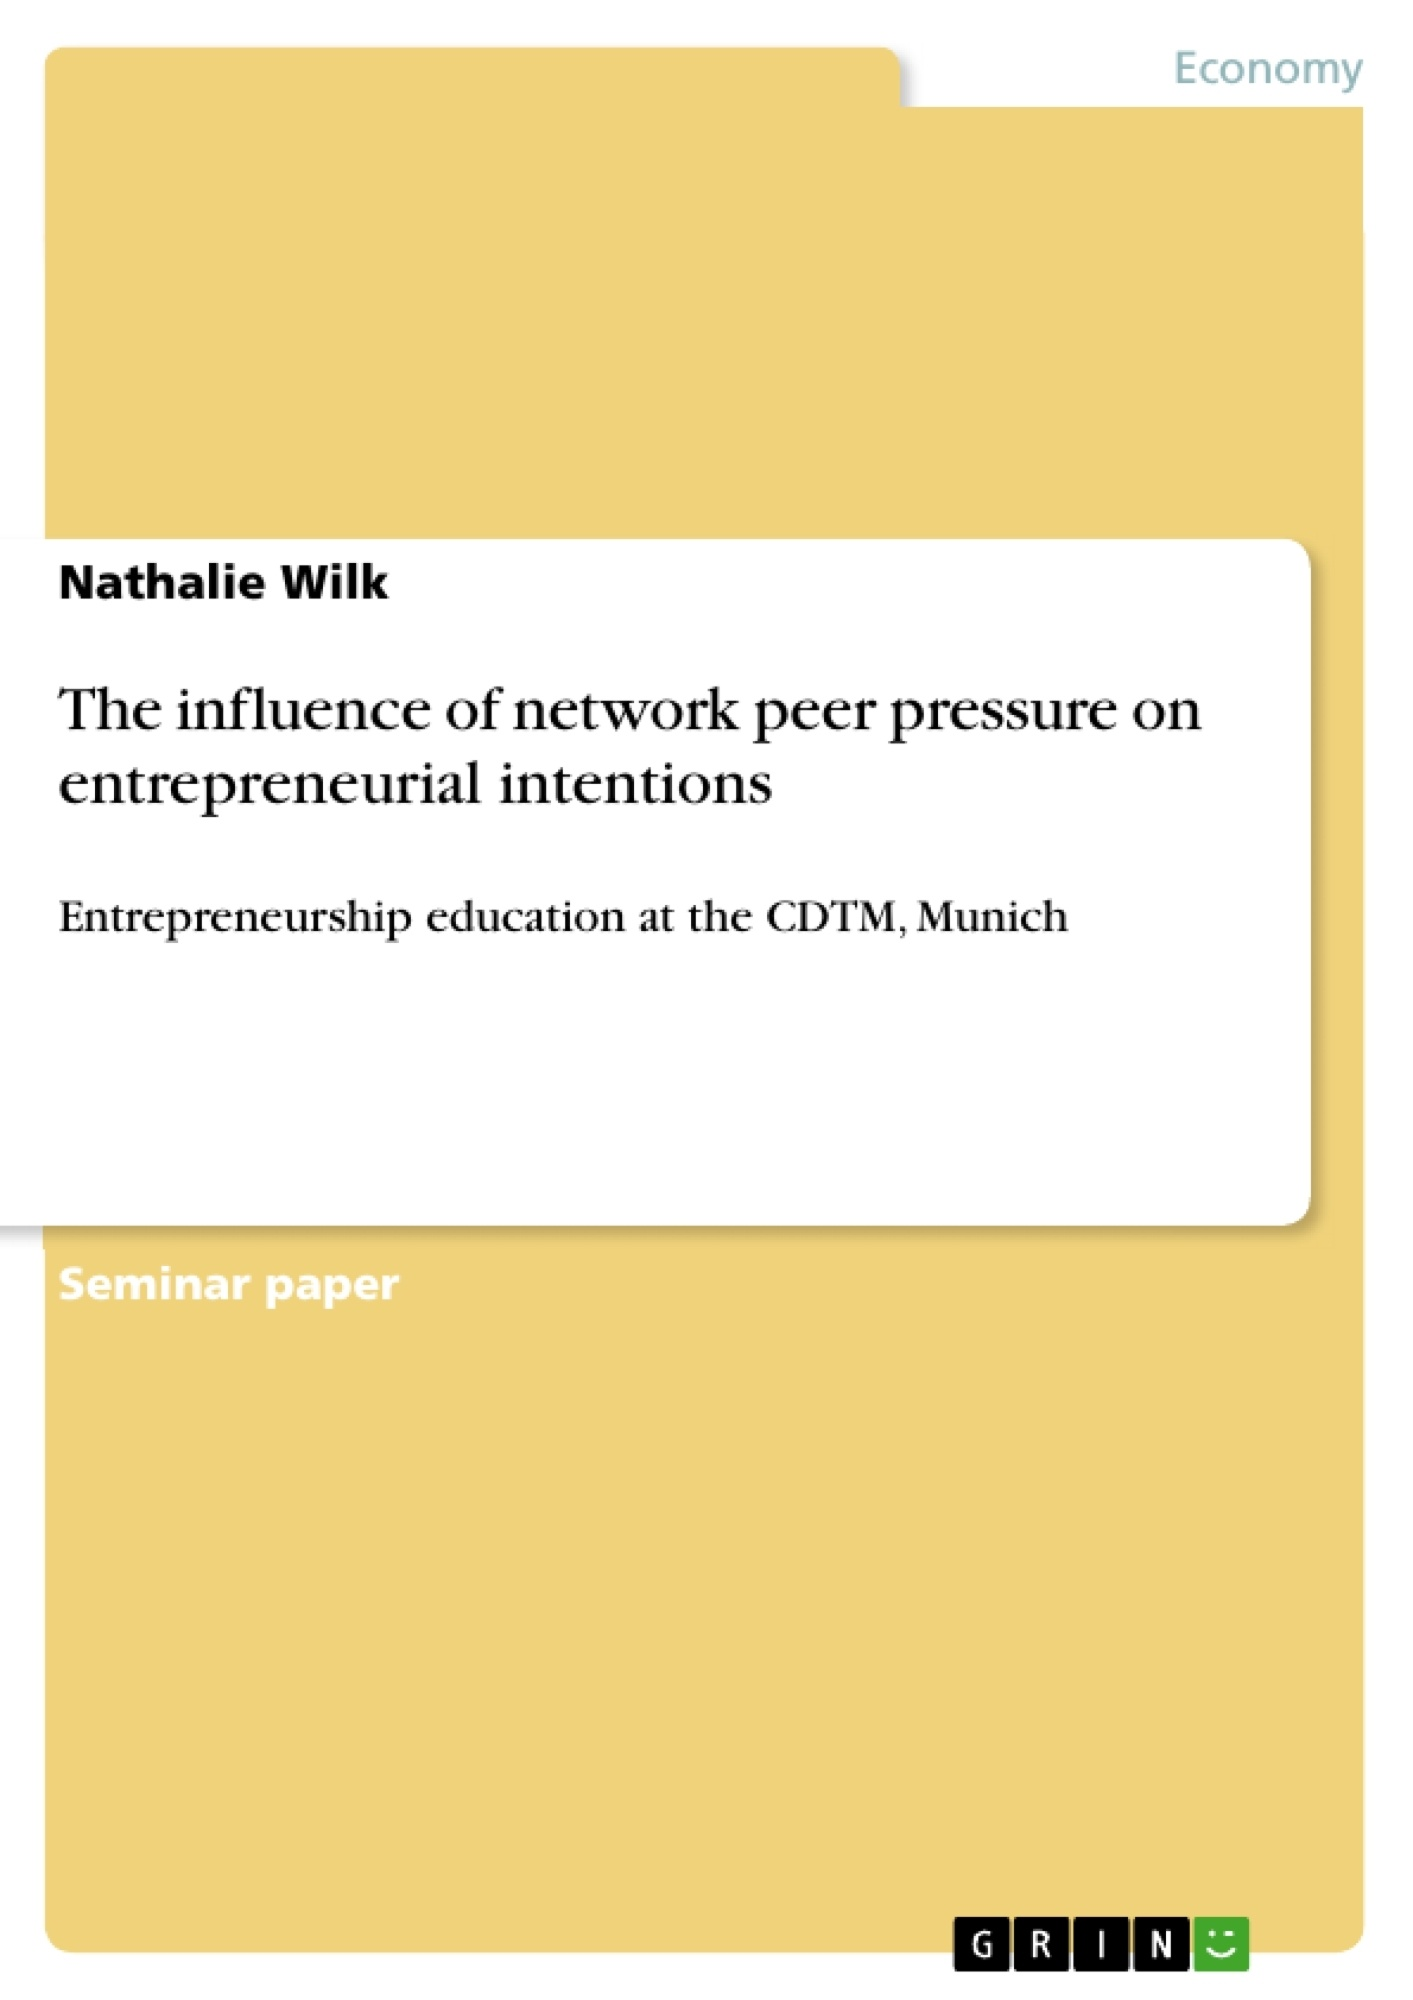 Title: The influence of network peer pressure on entrepreneurial intentions